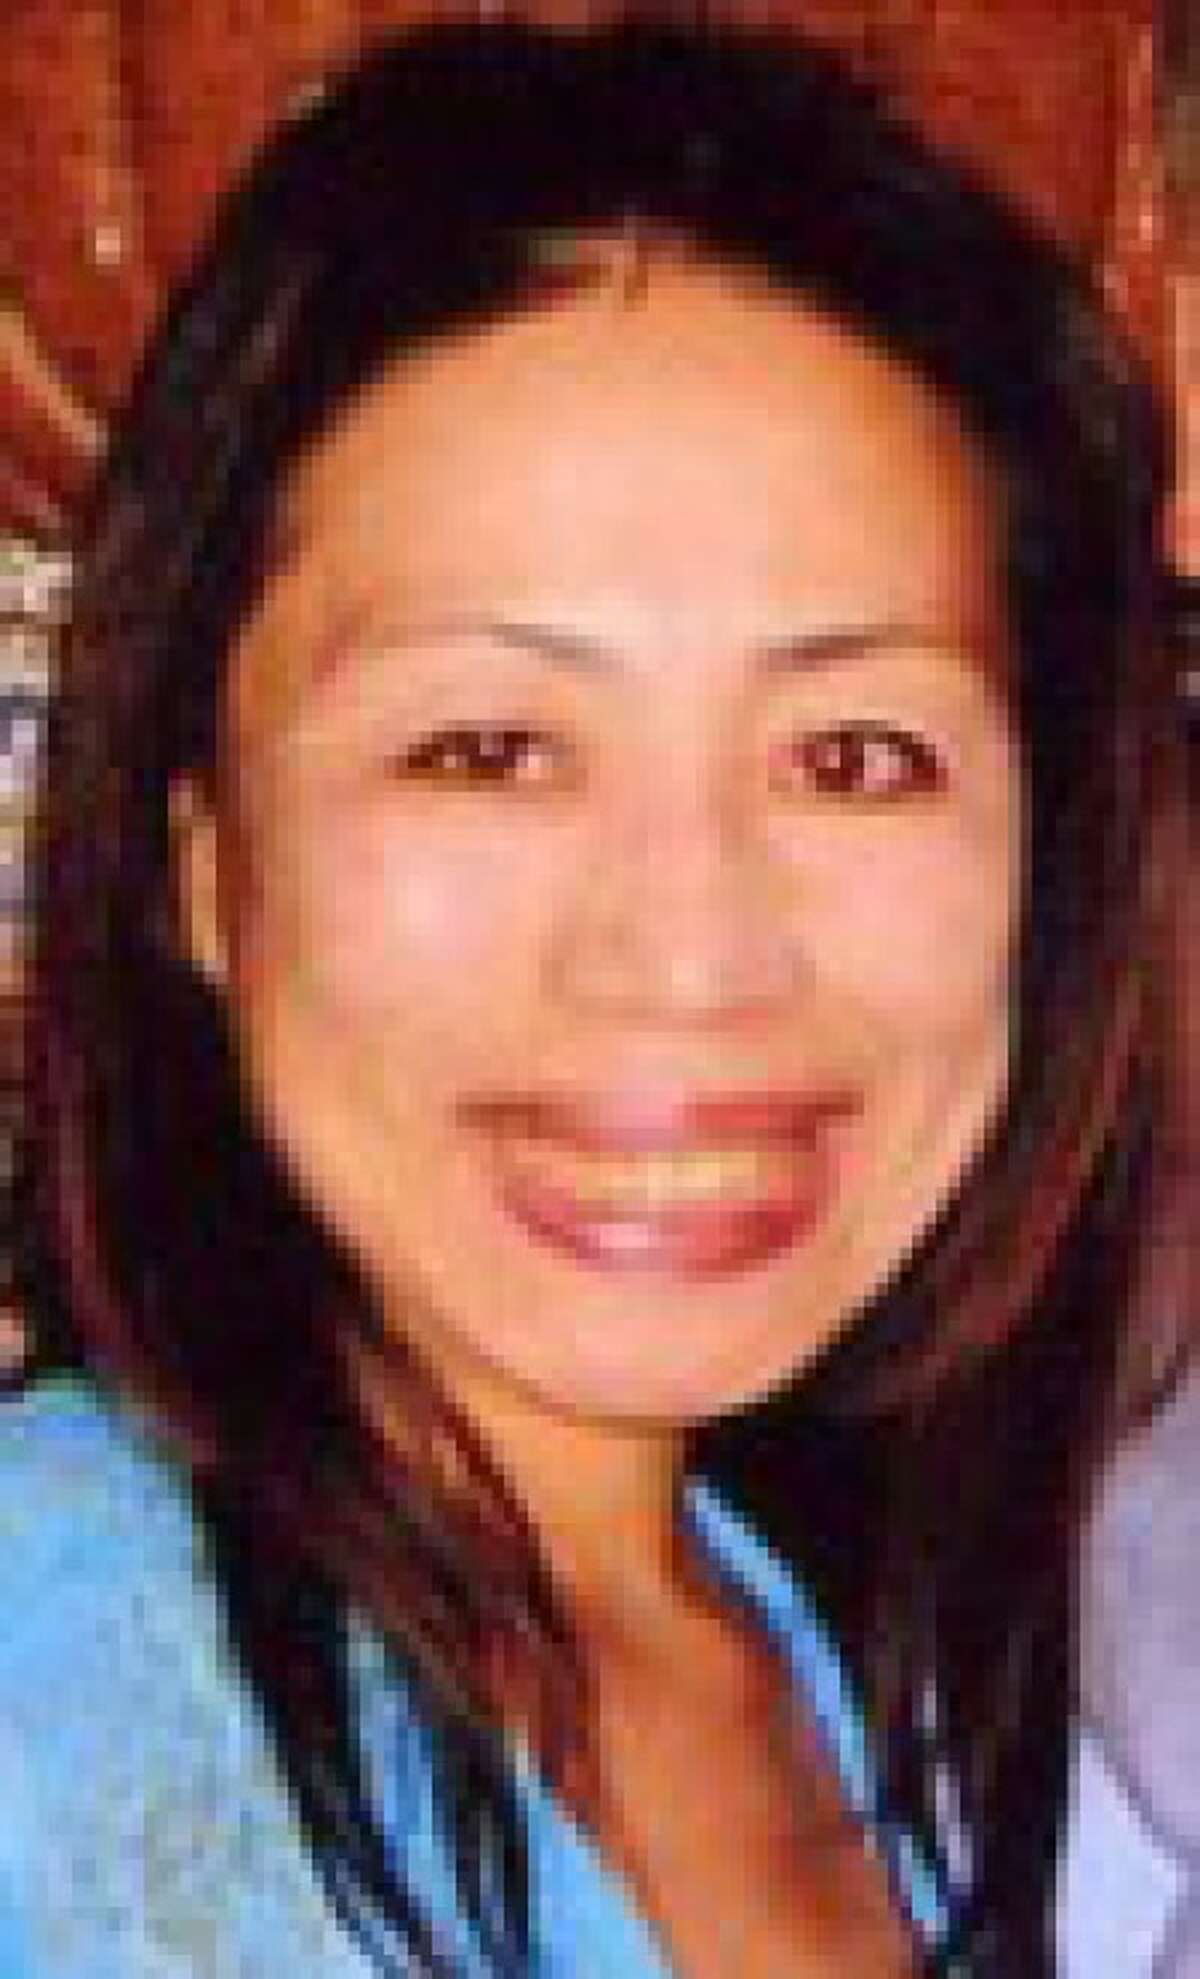 Cops ID body found at Compo Beach as missing Greenwich woman